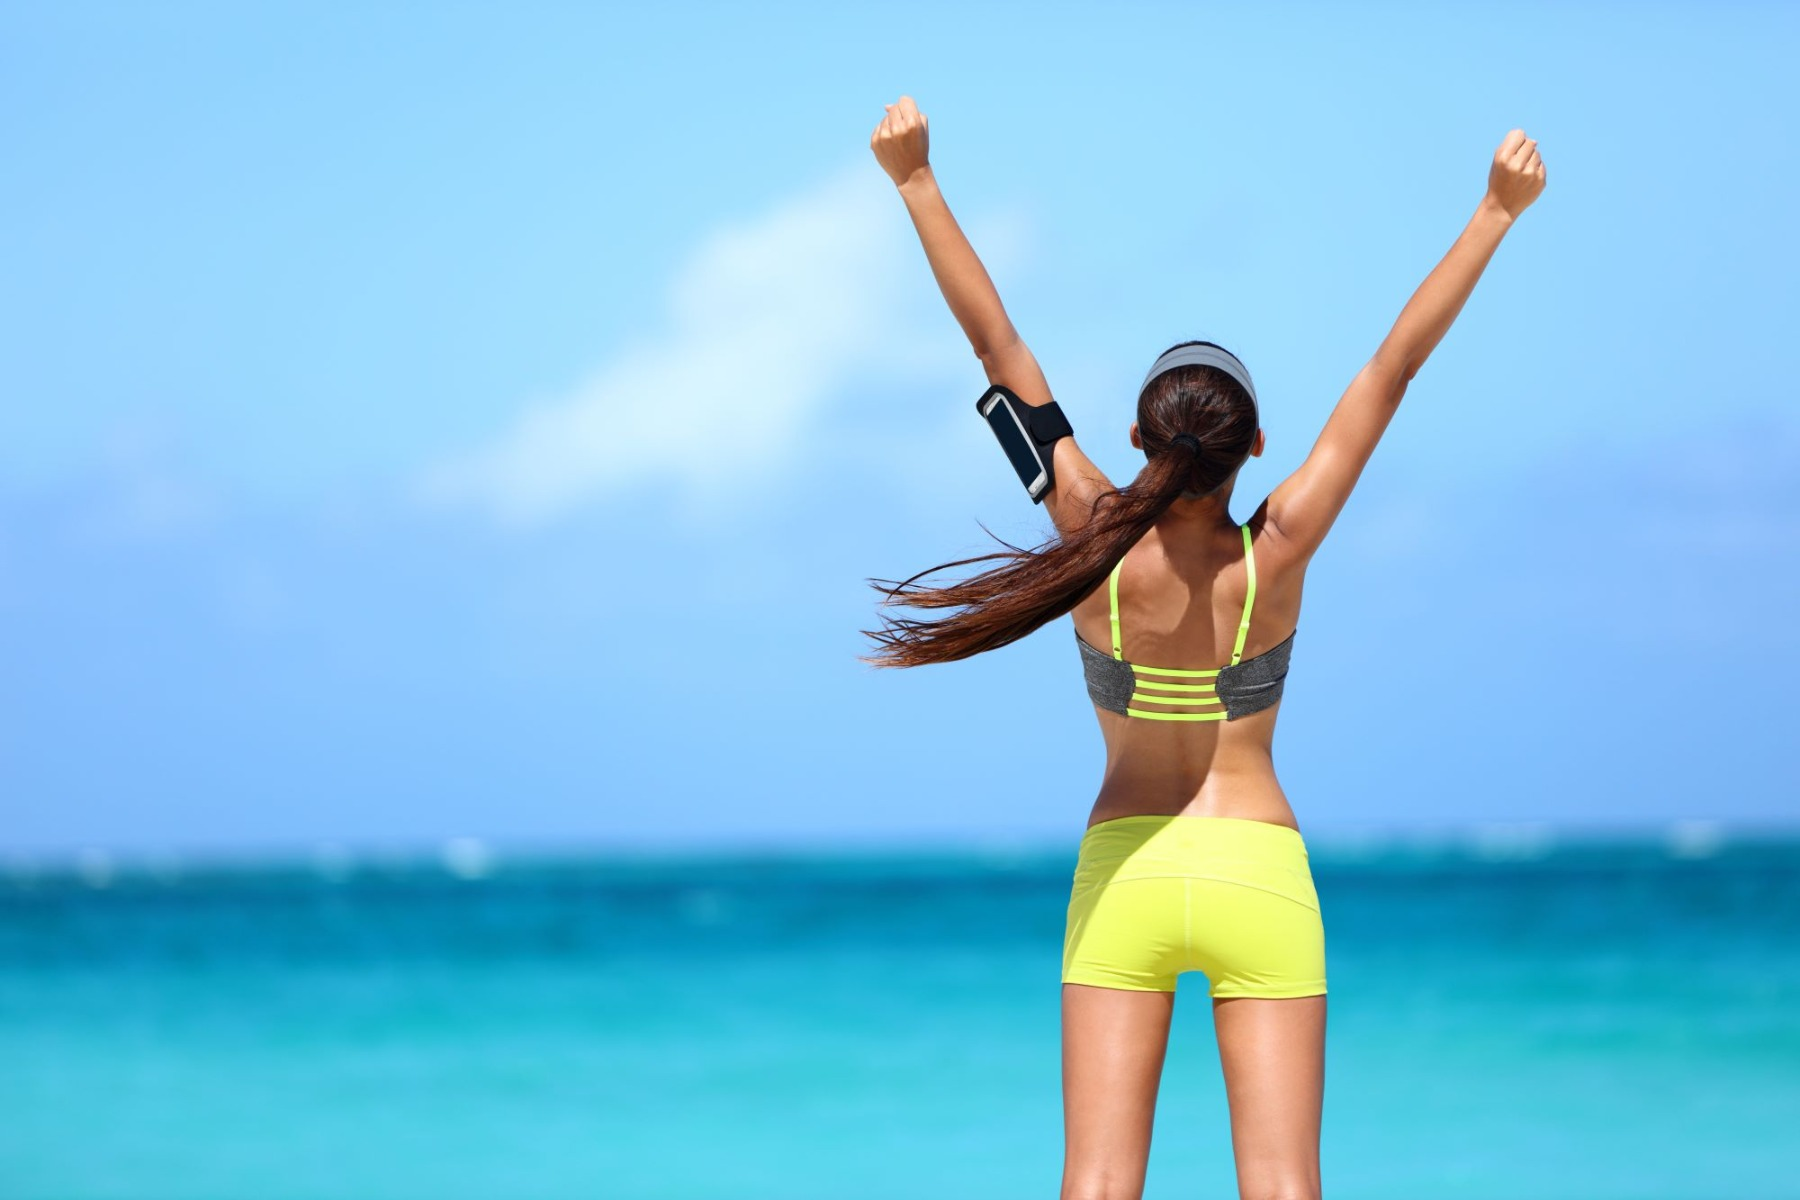 Woman in workout gear with back to camera standing on beach with arms raised up excitedly